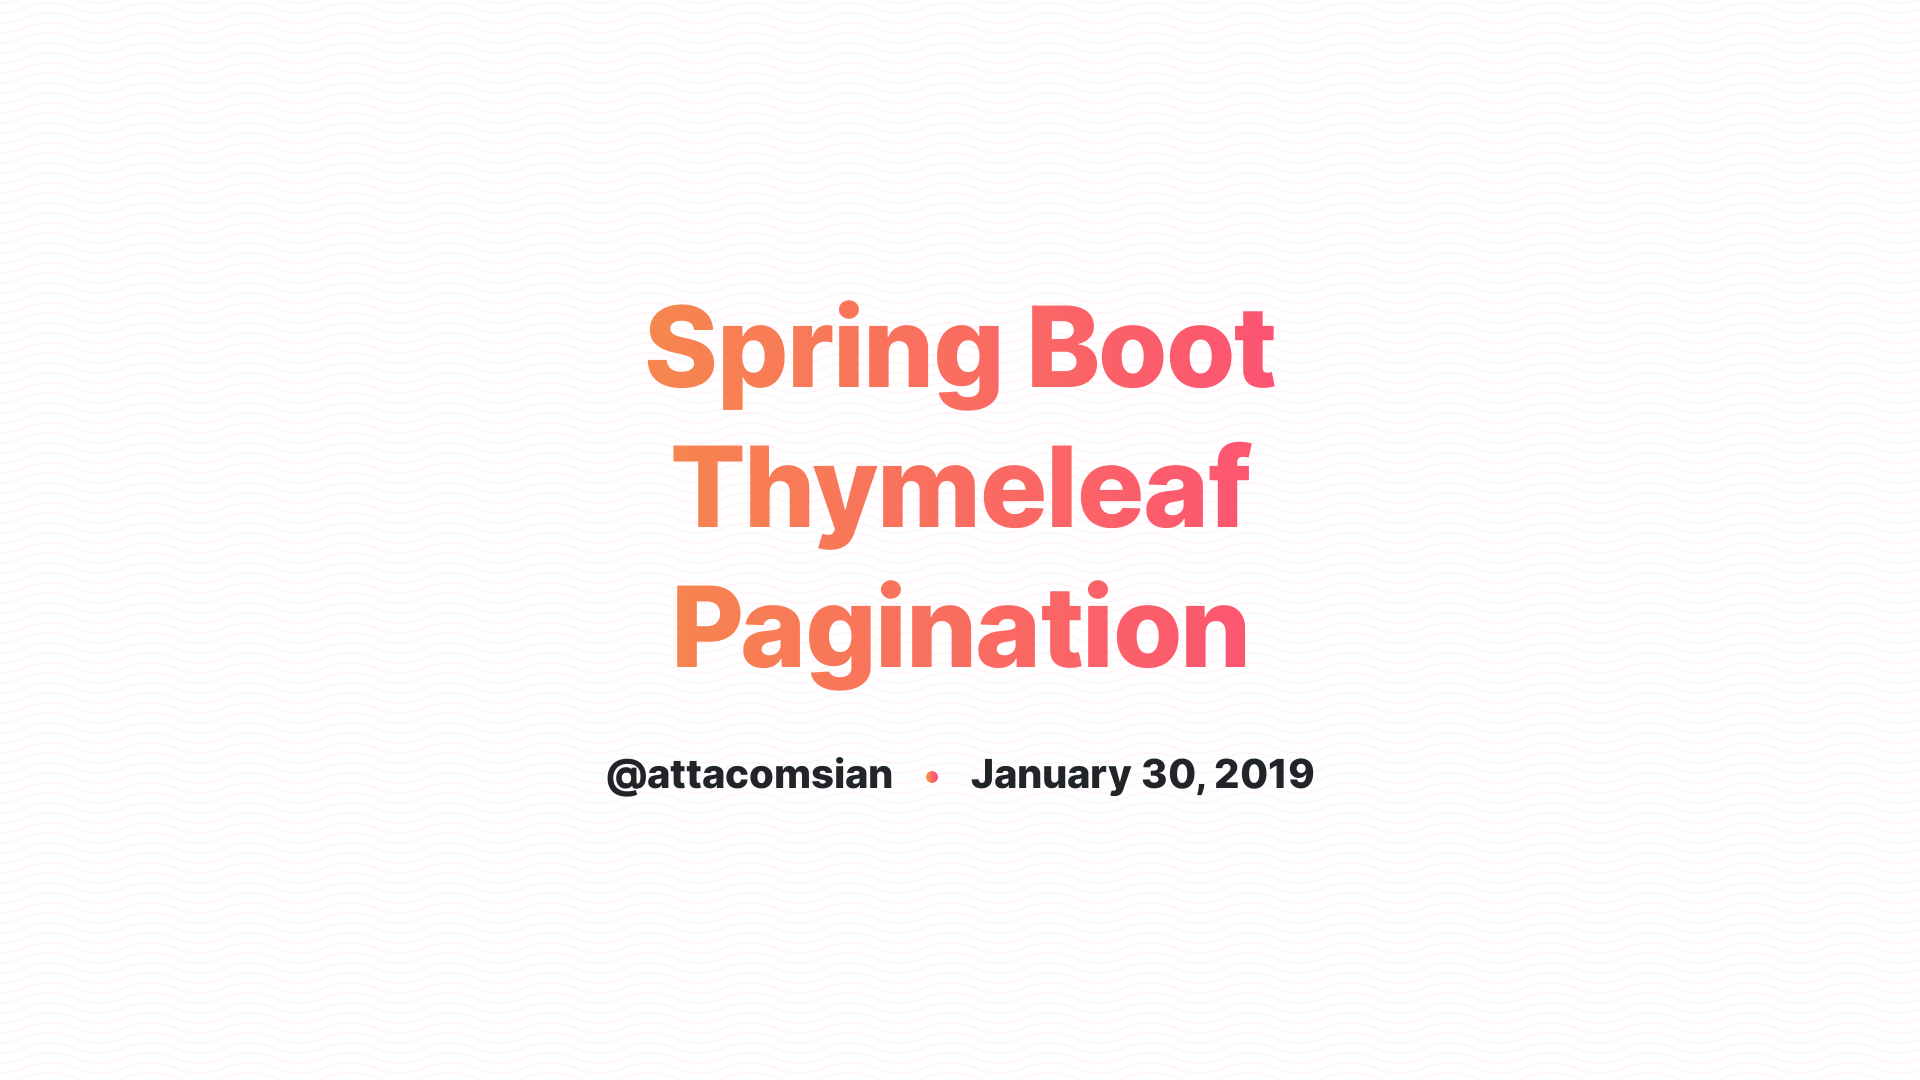 Spring Boot Thymeleaf Pagination